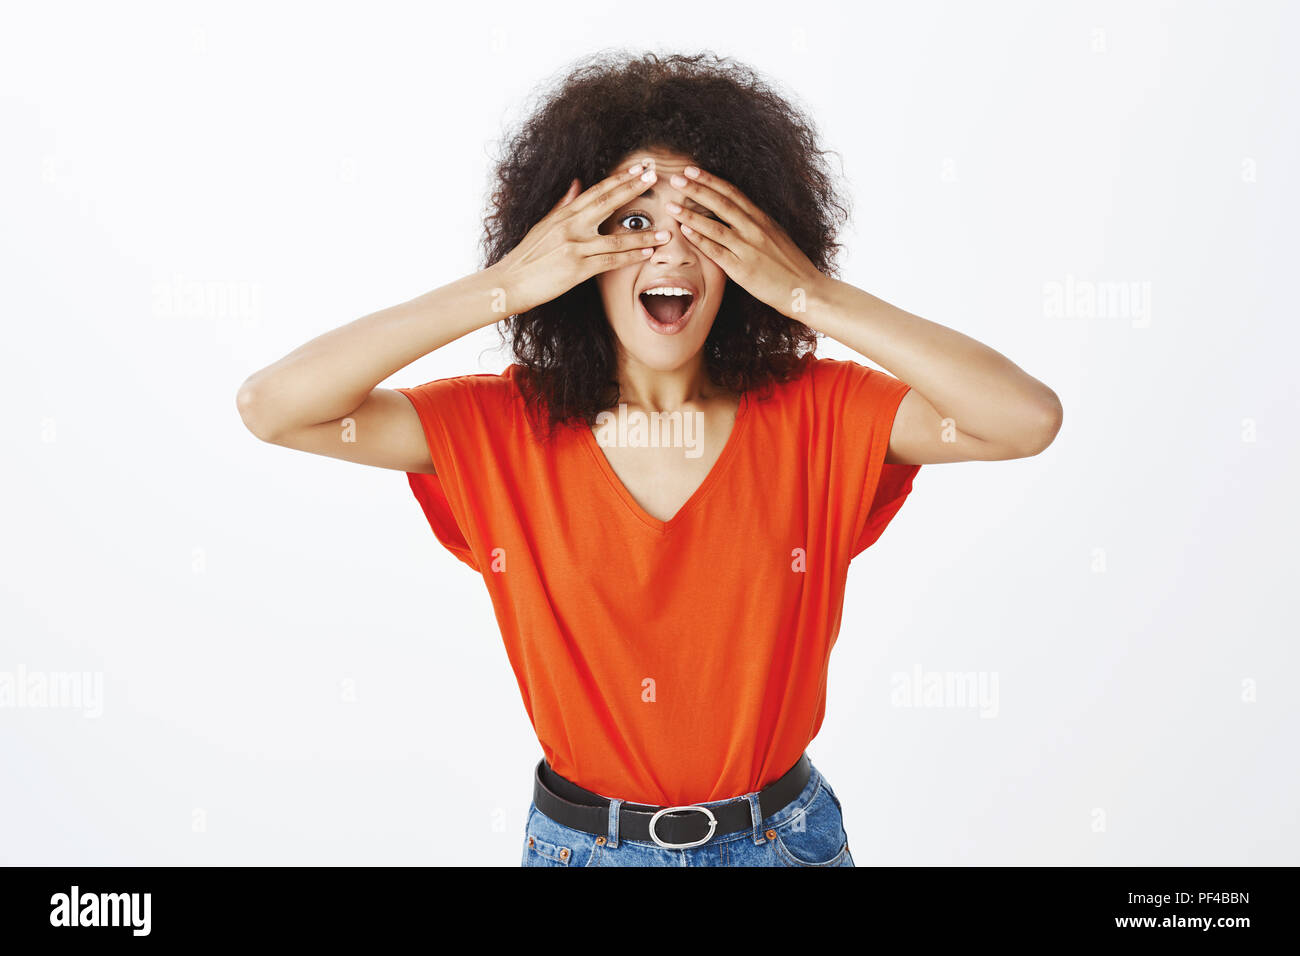 Girlfriend peeking impatiently waiting surprise. Portrait of good-looking happy woman with dark skin and afro hairstyle, covering eyes with palms and looking through fingers with opened smiling mouth - Stock Image